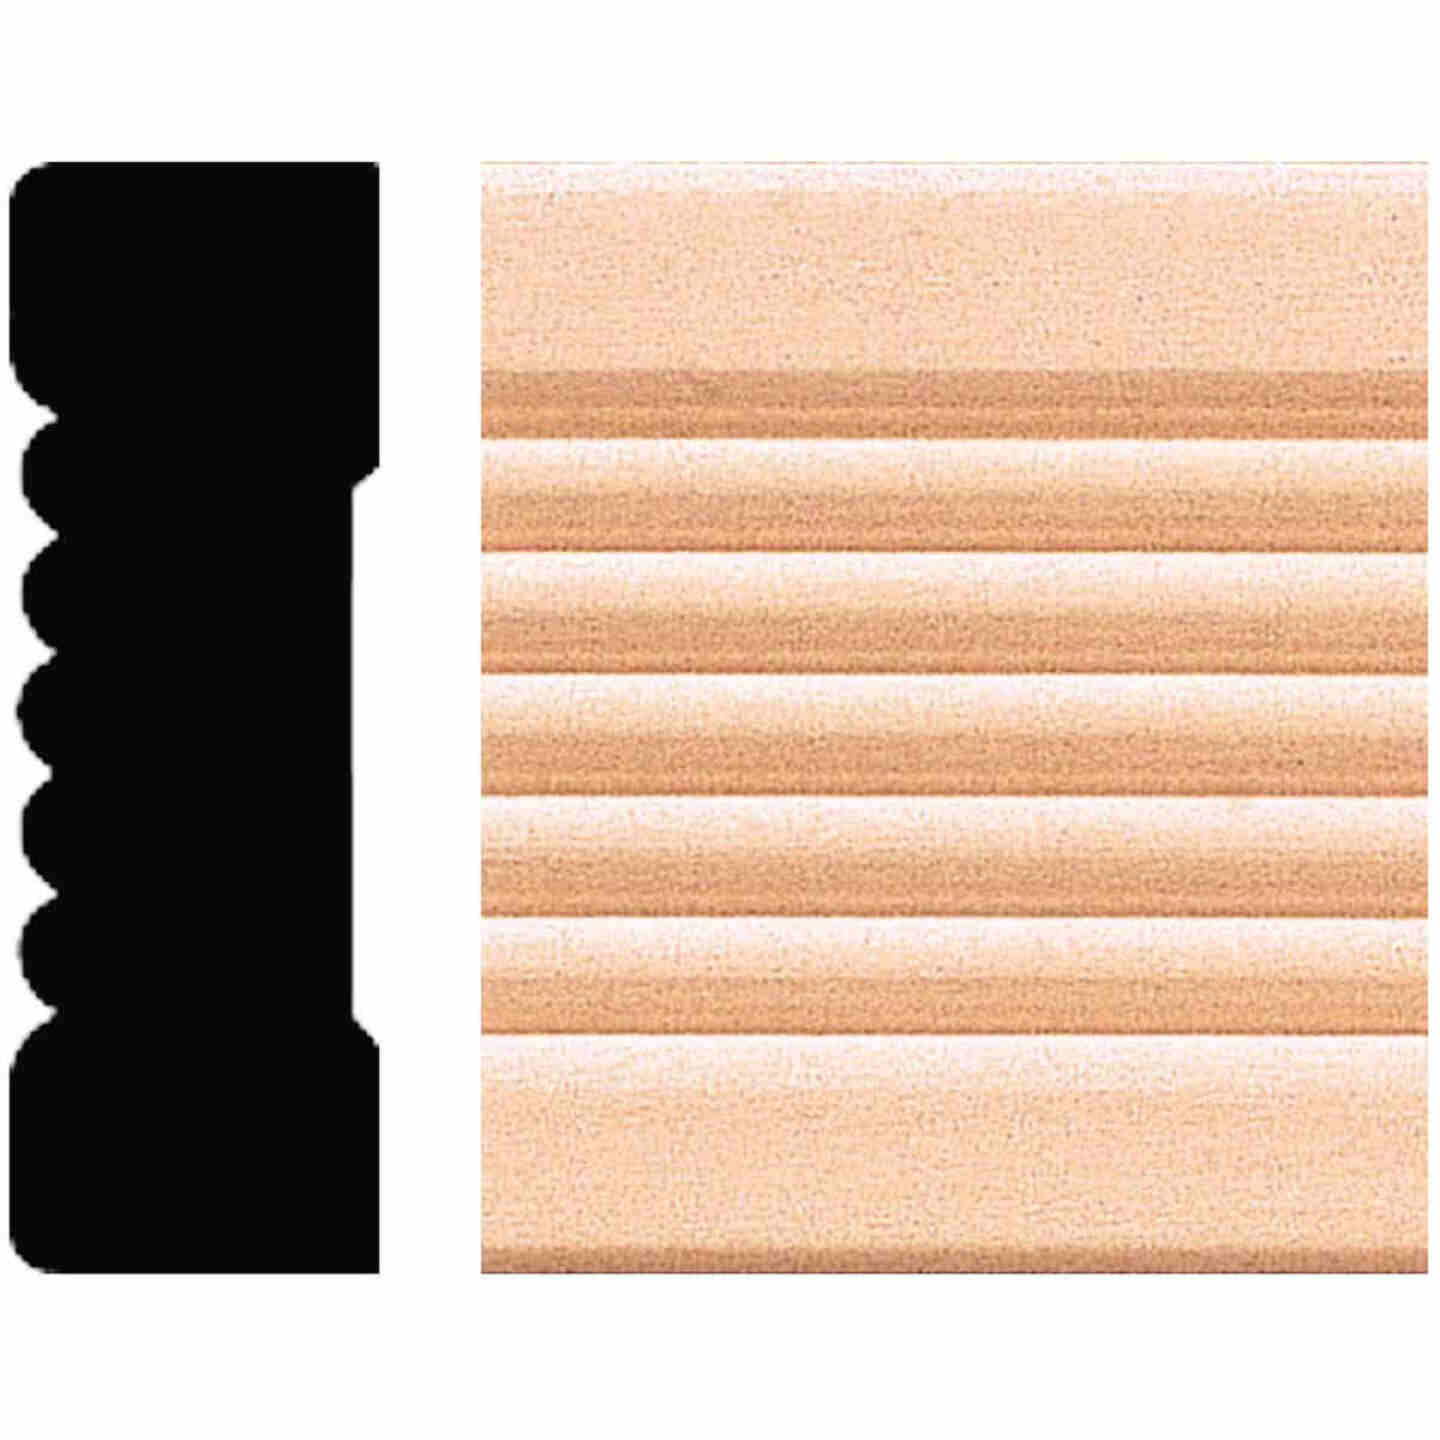 House of Fara 21/32 In. W. x 2-1/4 In. H. x 8 Ft. L. Natural Hardwood Fluted Wood Casing Image 1